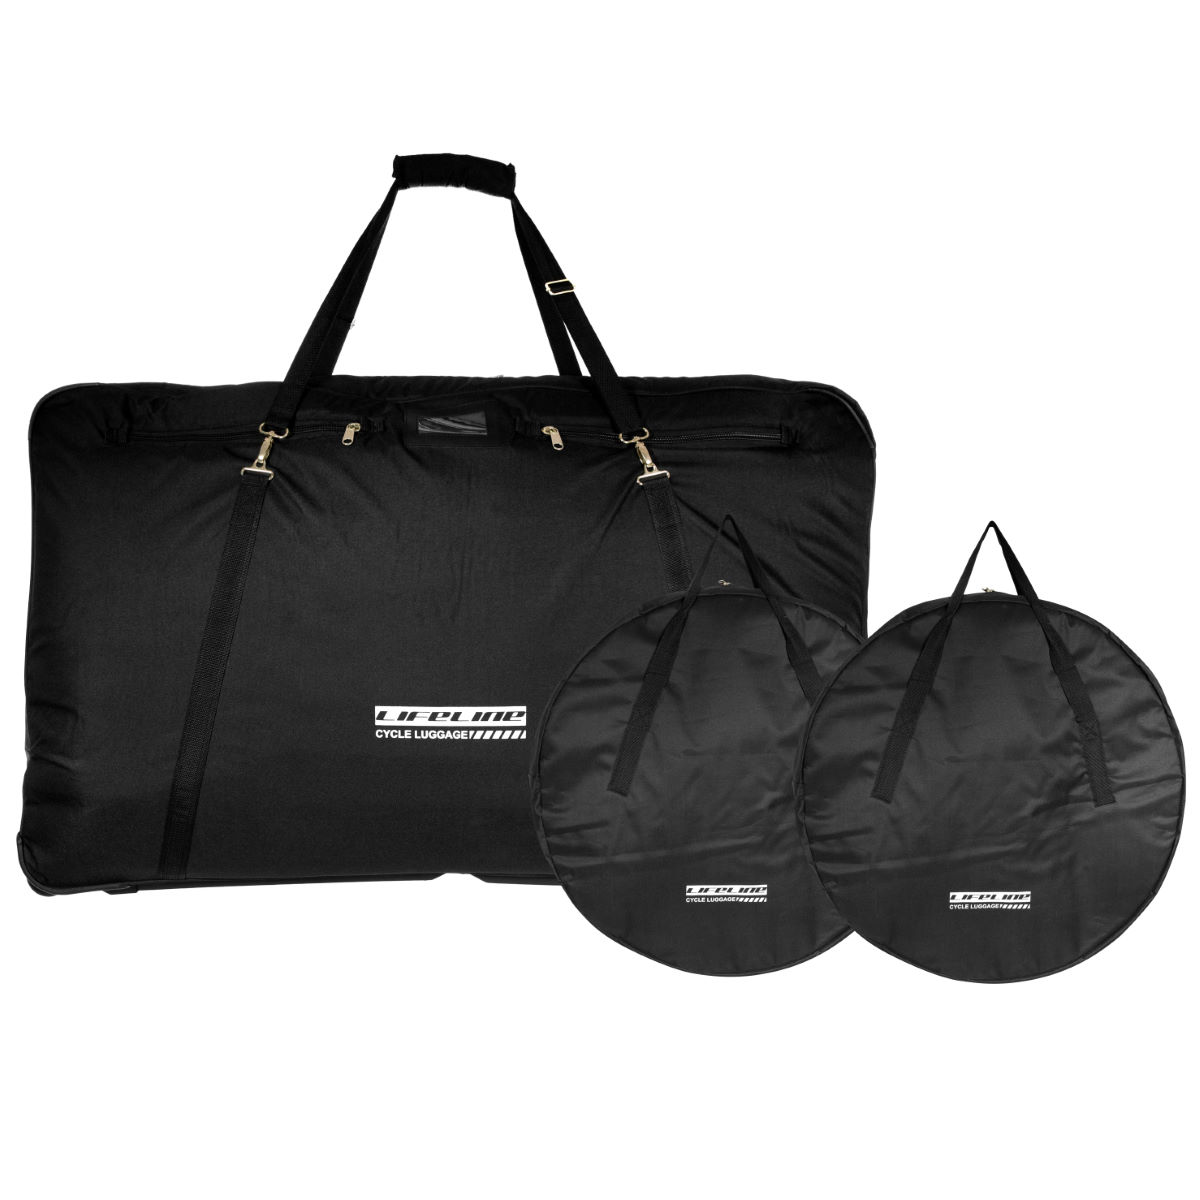 LifeLine Complete Bike & Wheel Bags Black One Size